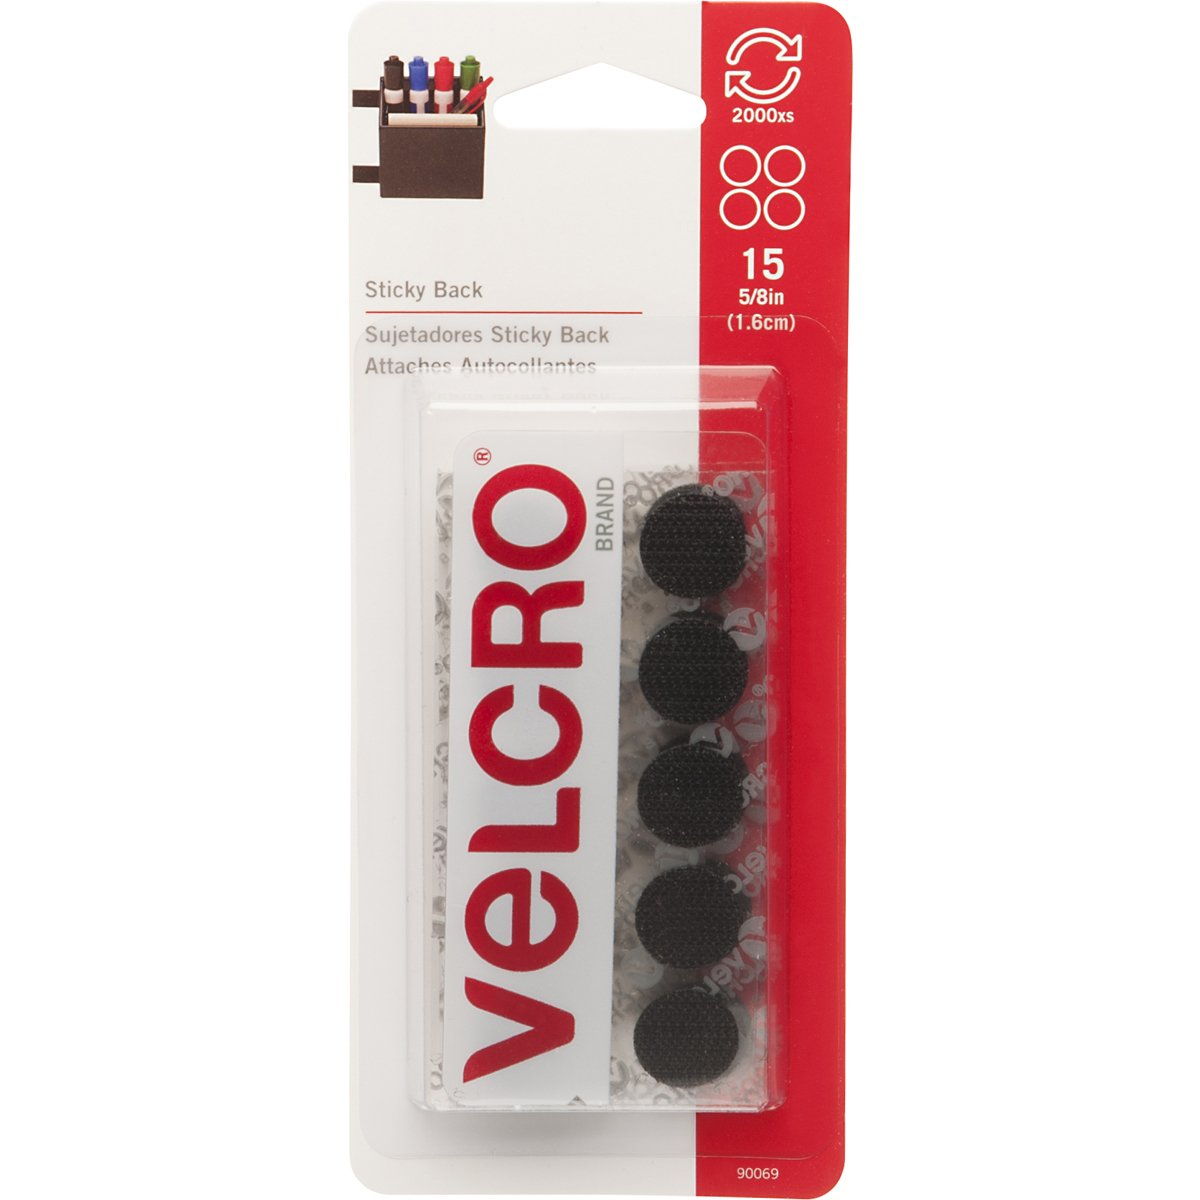 VELCRO Brand - Sticky Back Hook and Loop Fasteners | Perfect for Home or Office | 5/8in Coins | Pack of 15 | Black VELCRO USA Velcro USA Inc. 90069